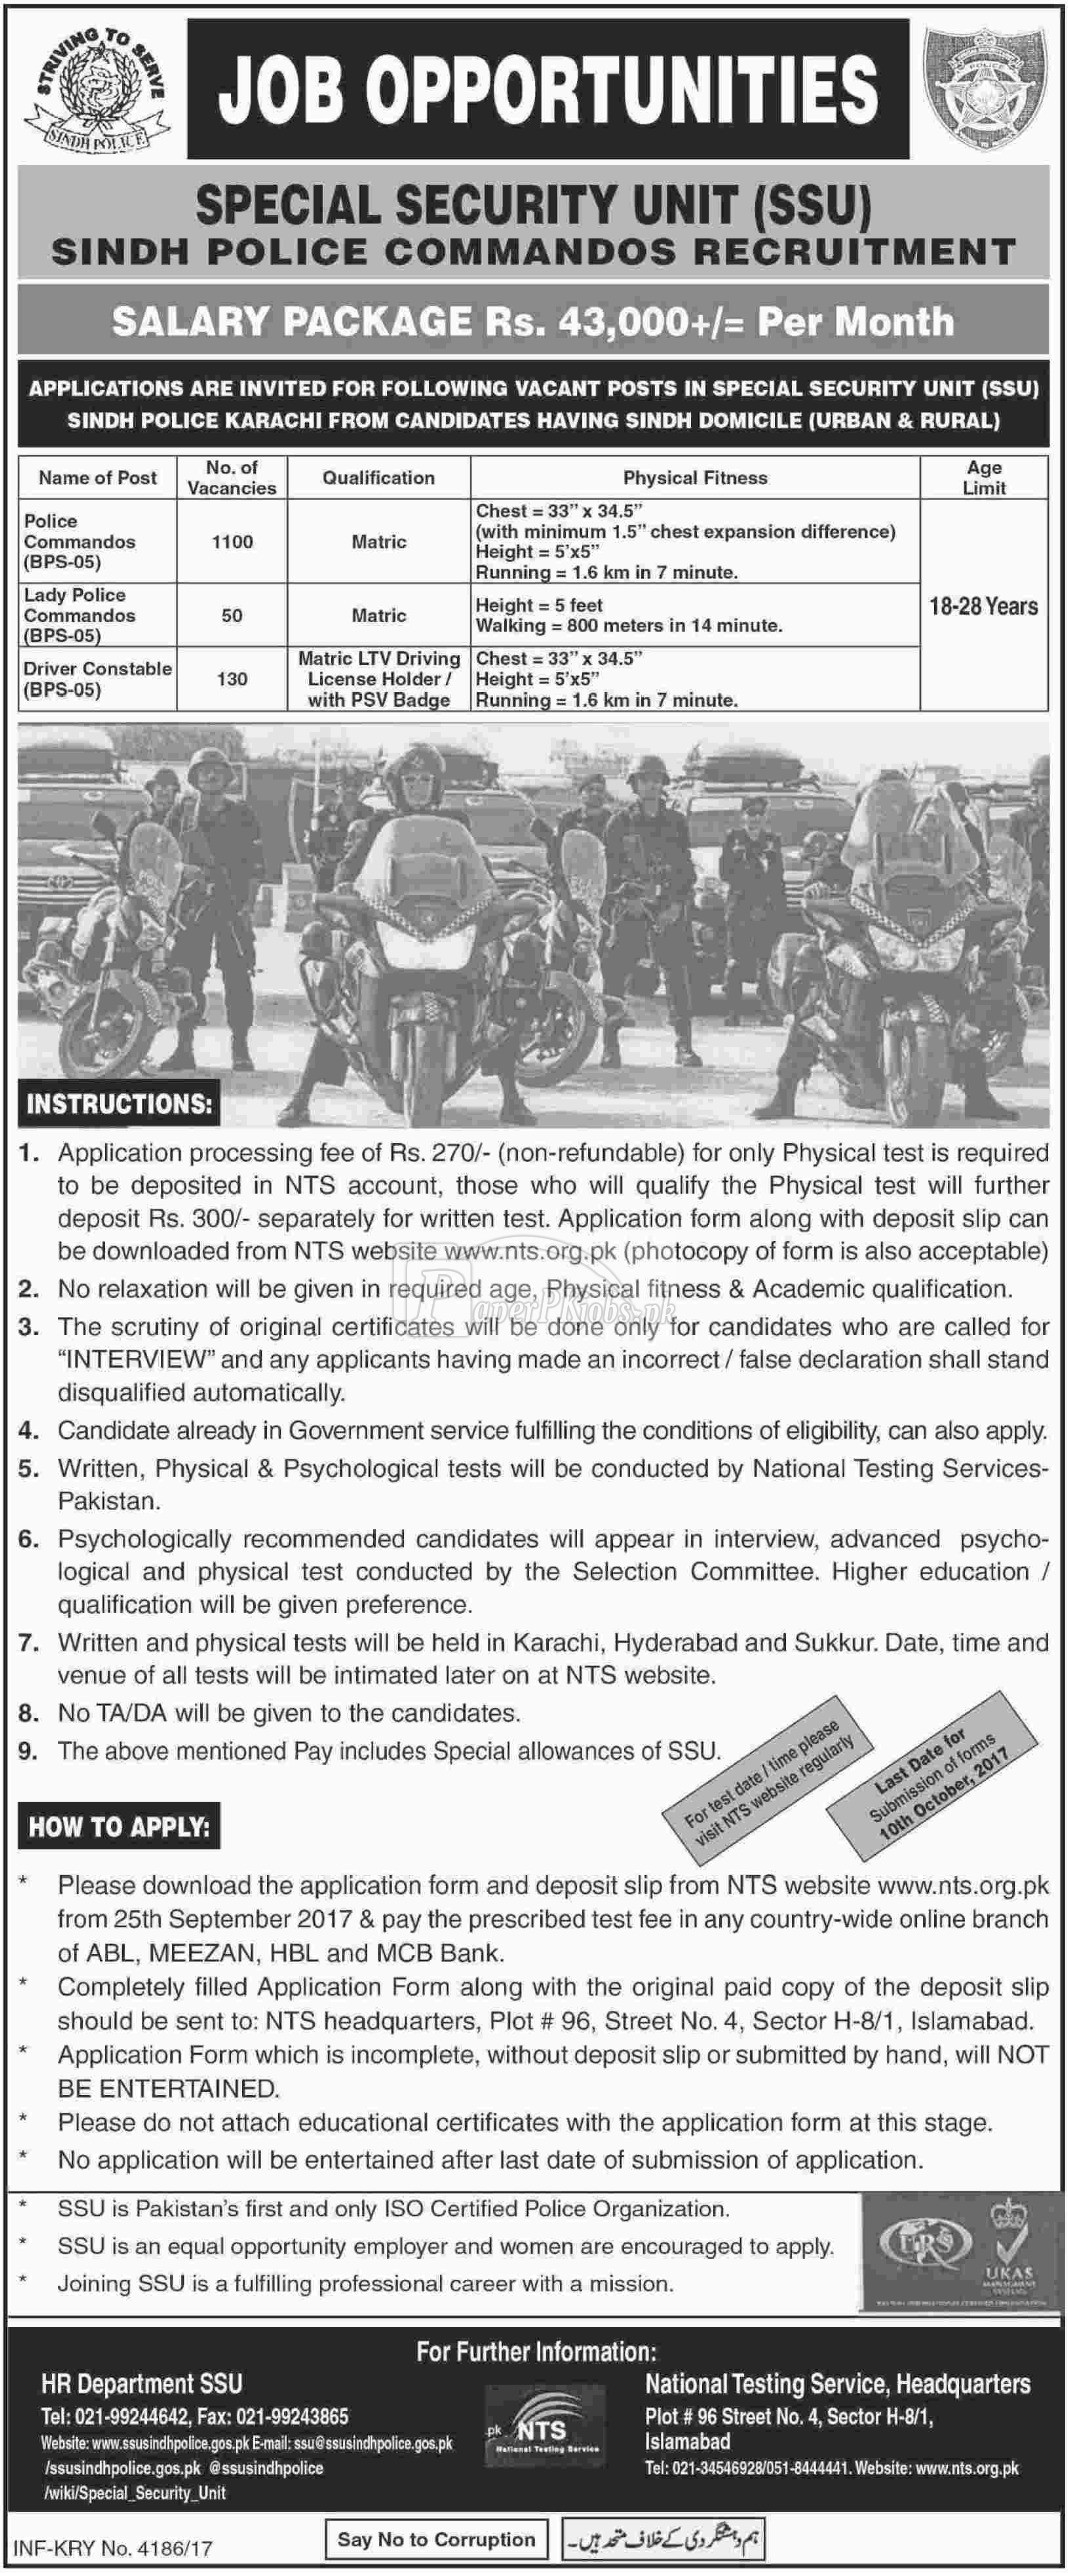 Special Security Unit SSU Sindh Police Karachi NTS Jobs 2017